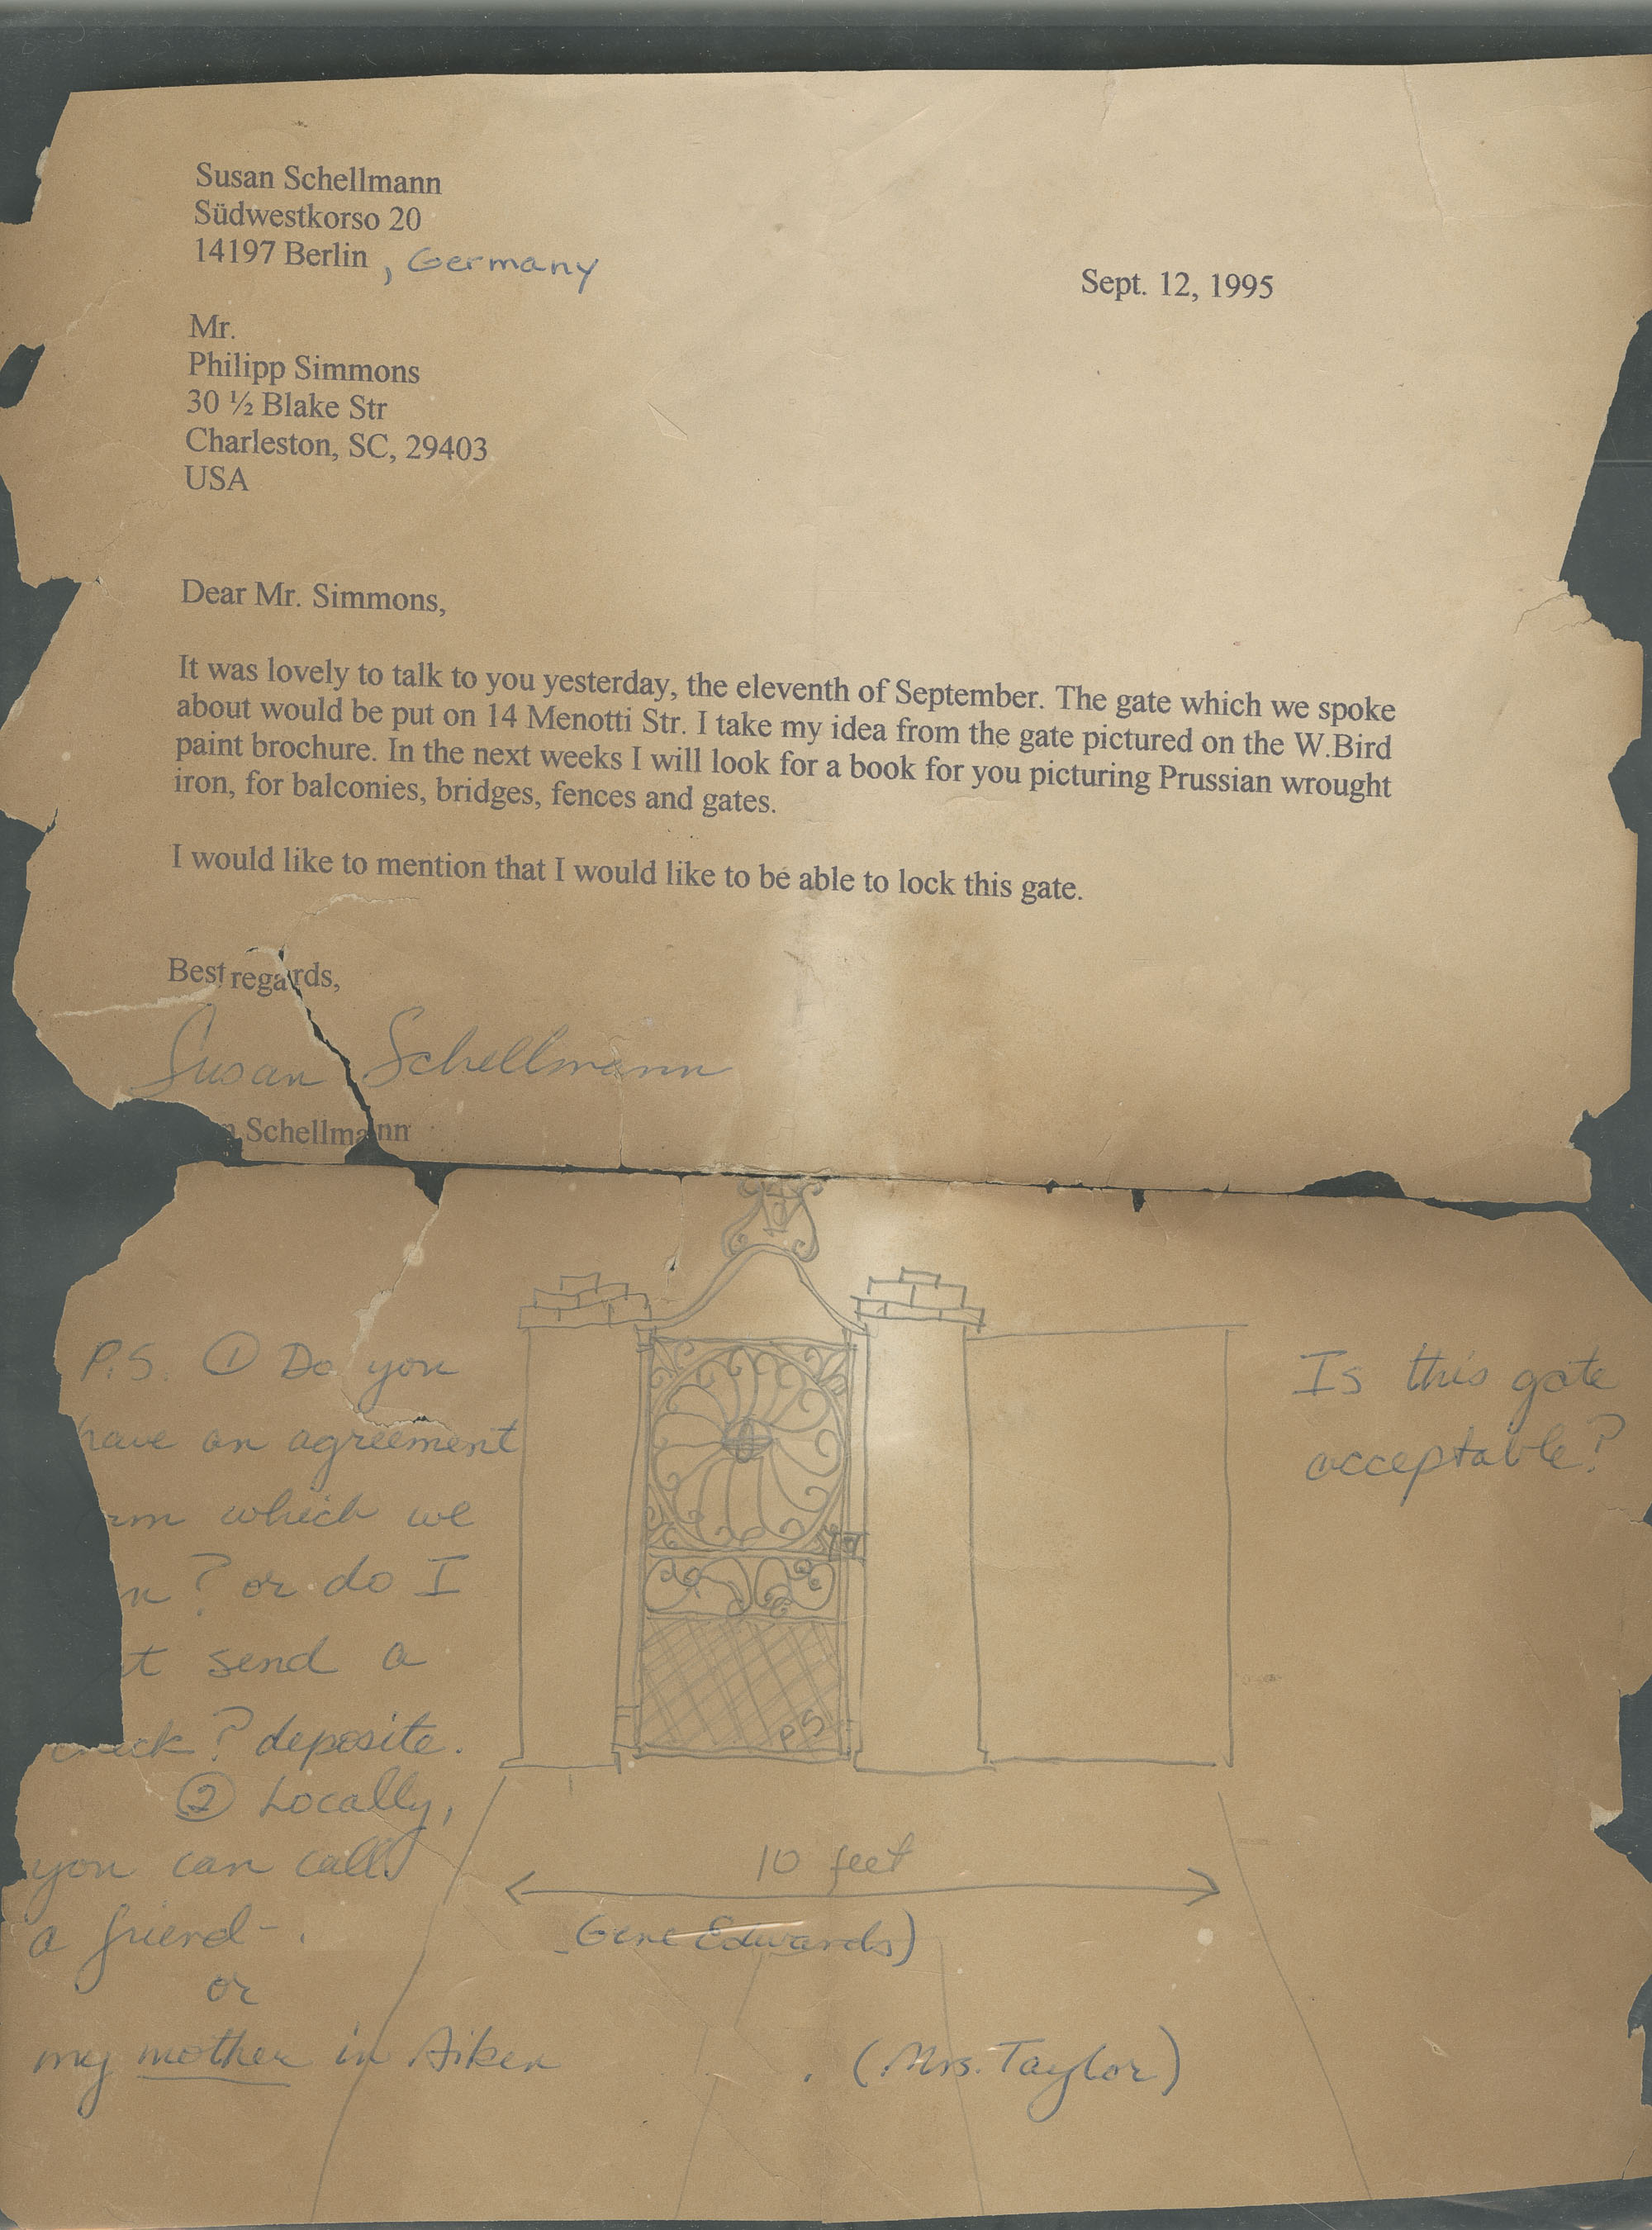 Letter regarding gate for 14 Menotti Street with sketch.